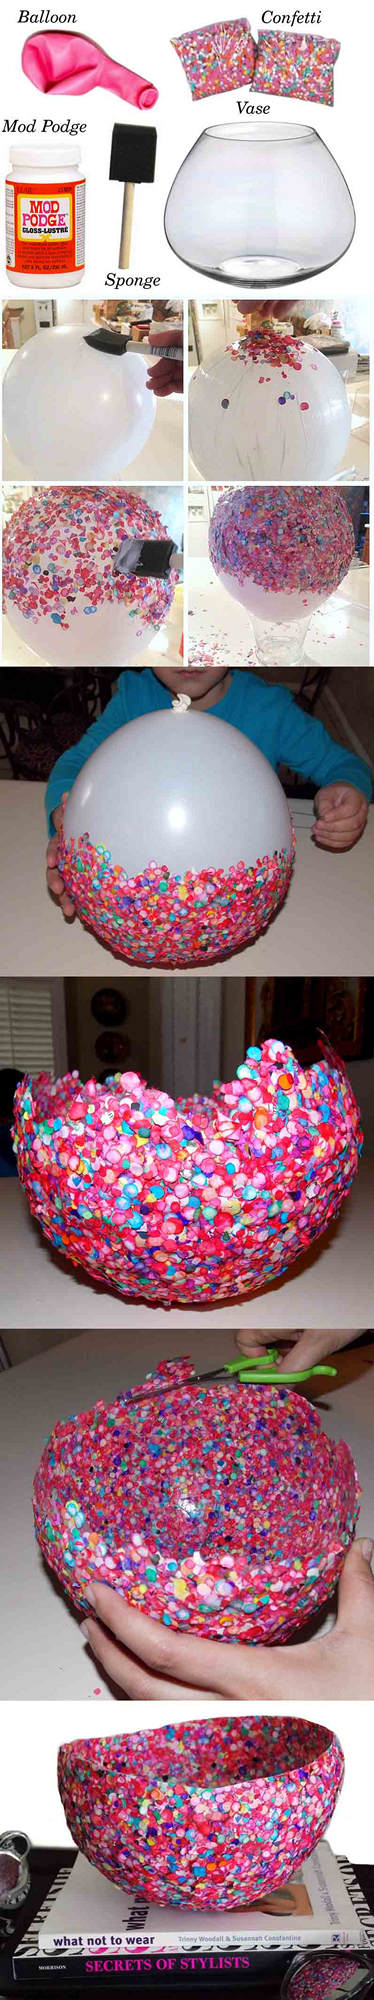 simple-craft-ideas-for-adults-7